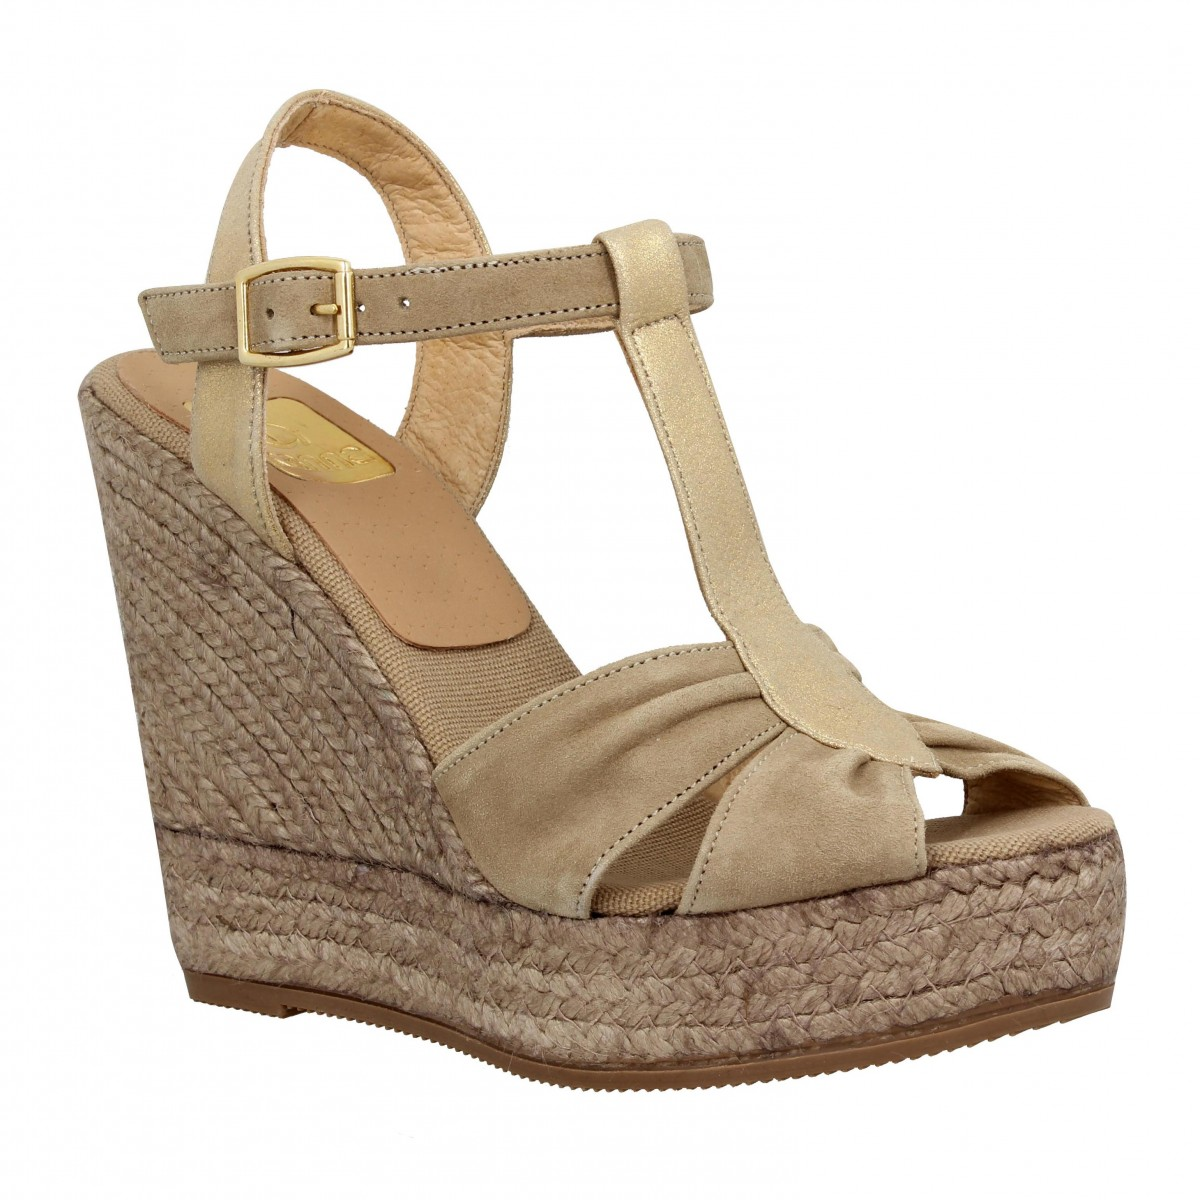 Compensées KANNA 1576 velours + cuir Femme Taupe + Or